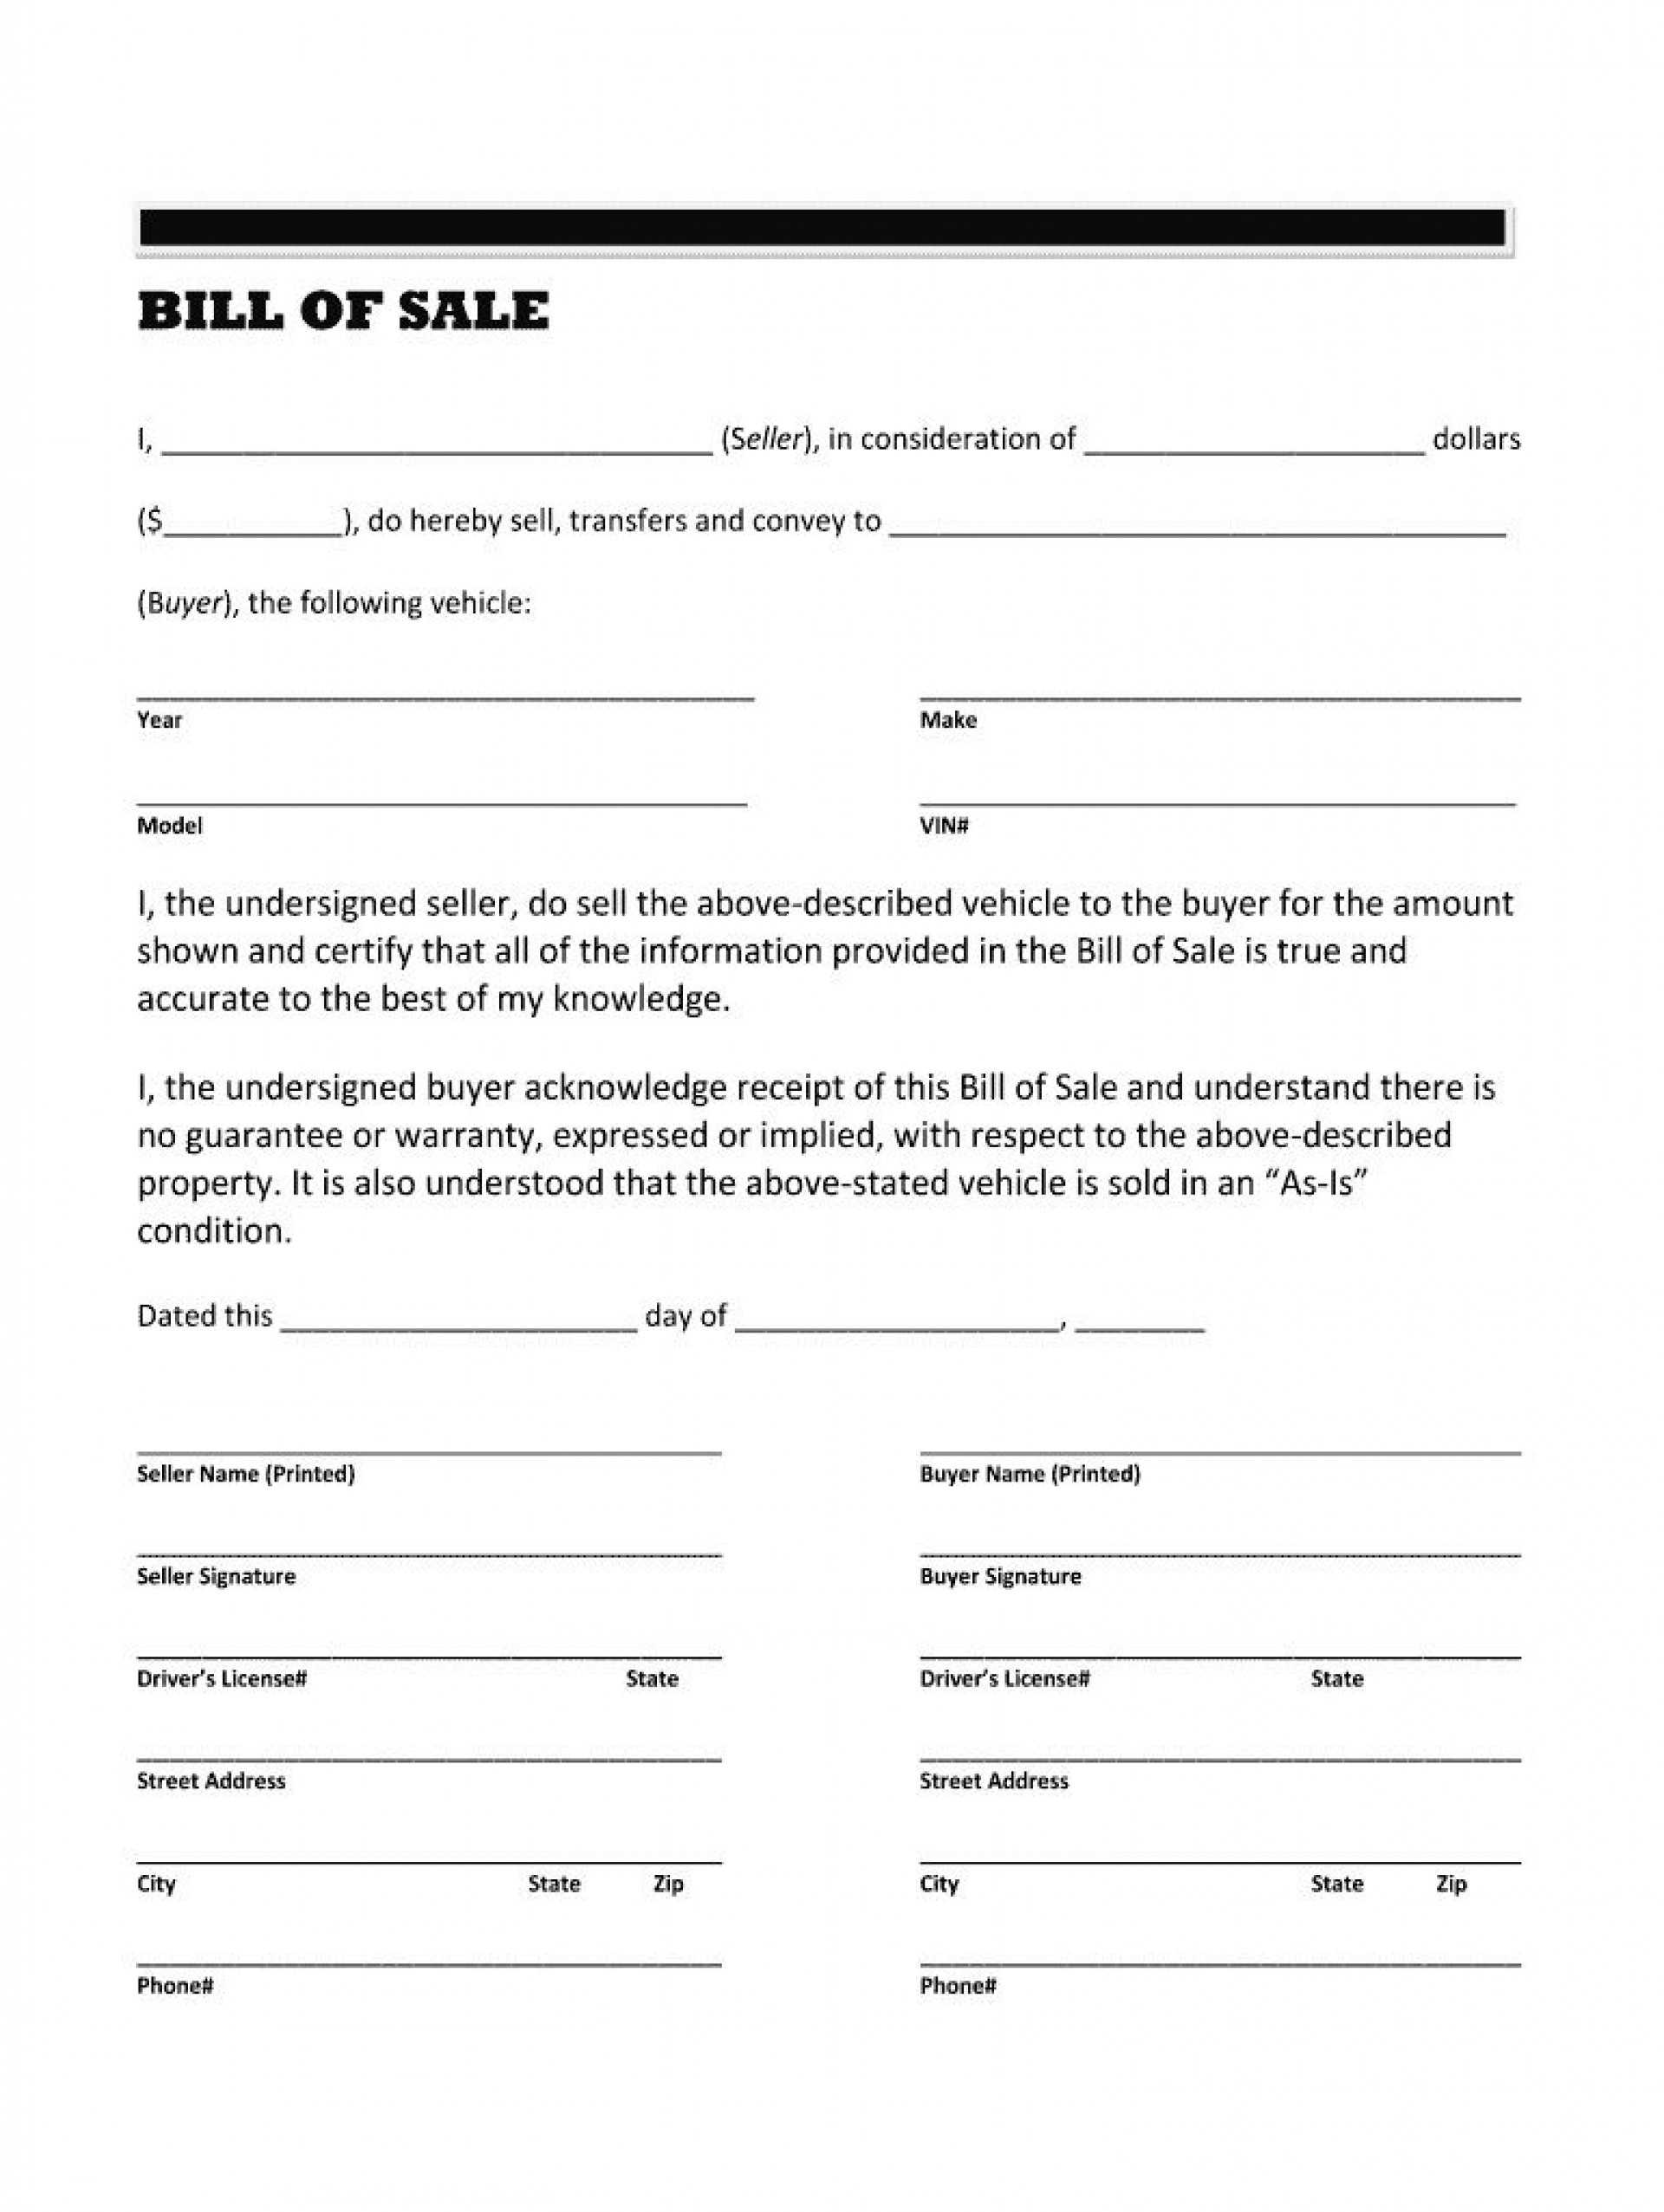 004 Imposing Template For Bill Of Sale High Resolution  Example Trailer Free Mobile Home Used Car1920